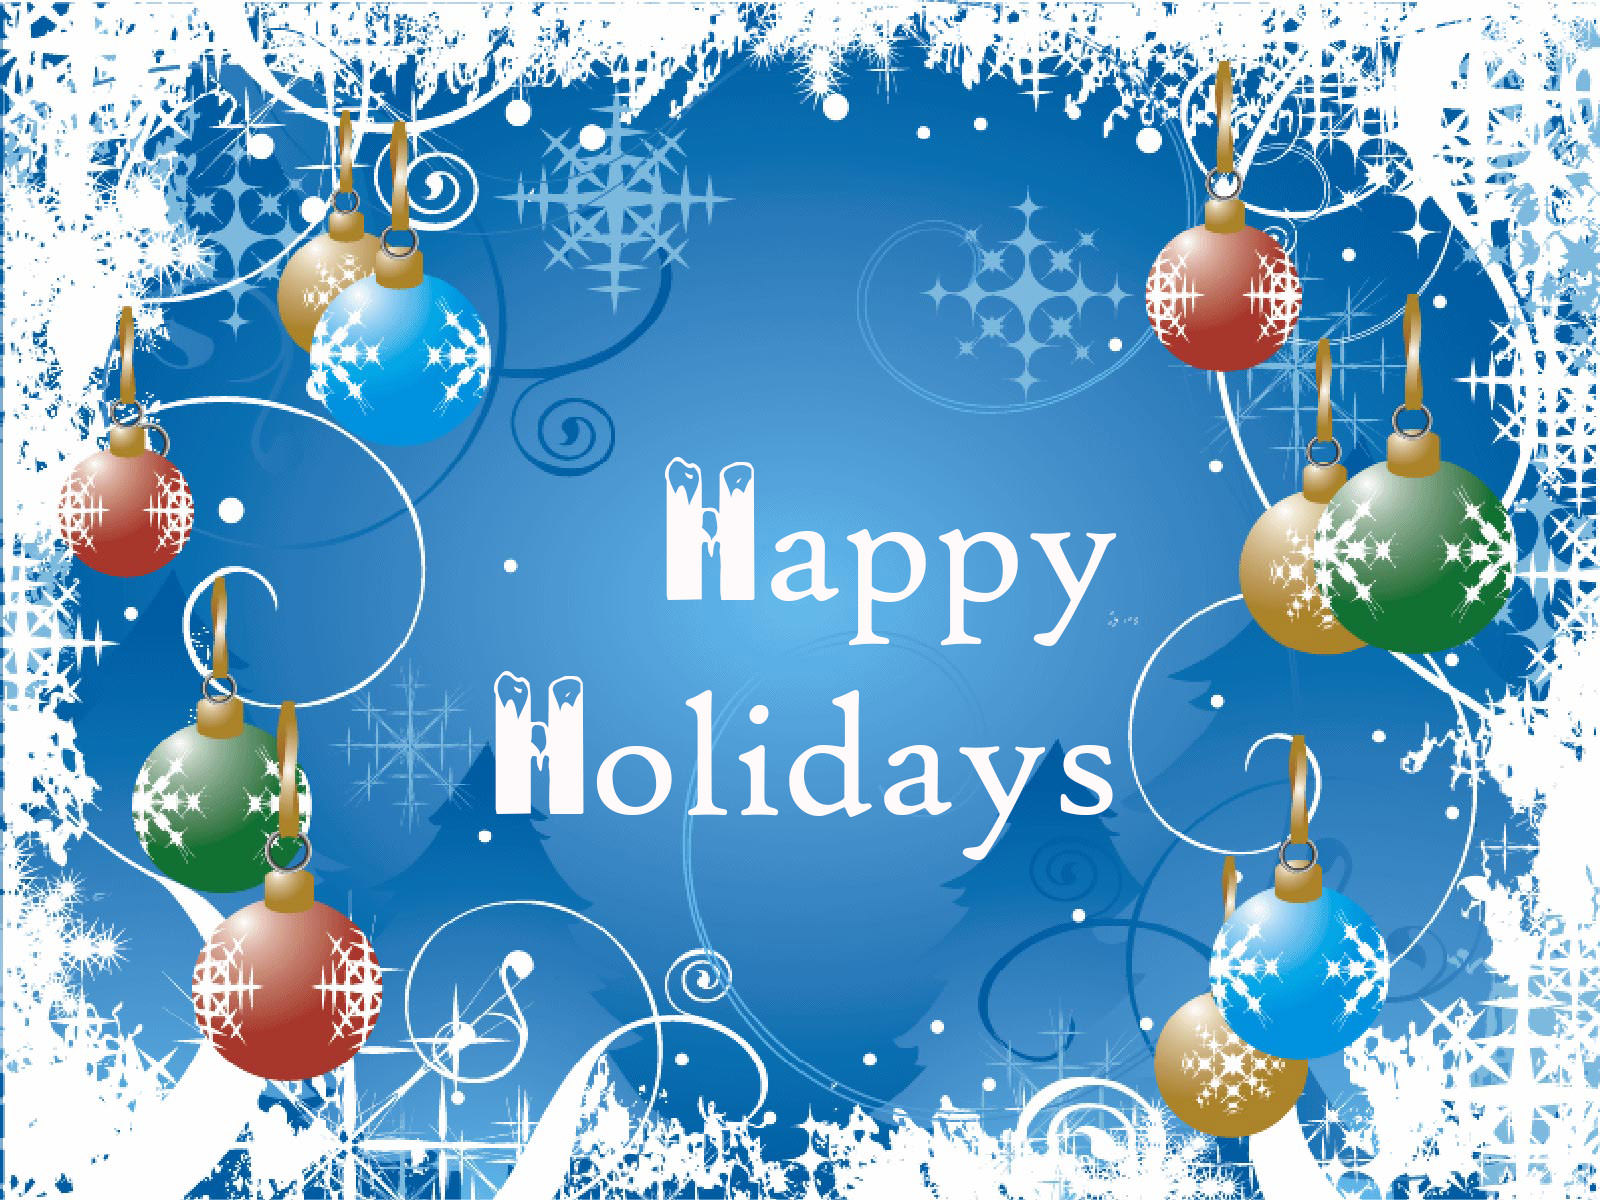 Desktop wallpapers holiday free - Happy Holiday Wallpaper